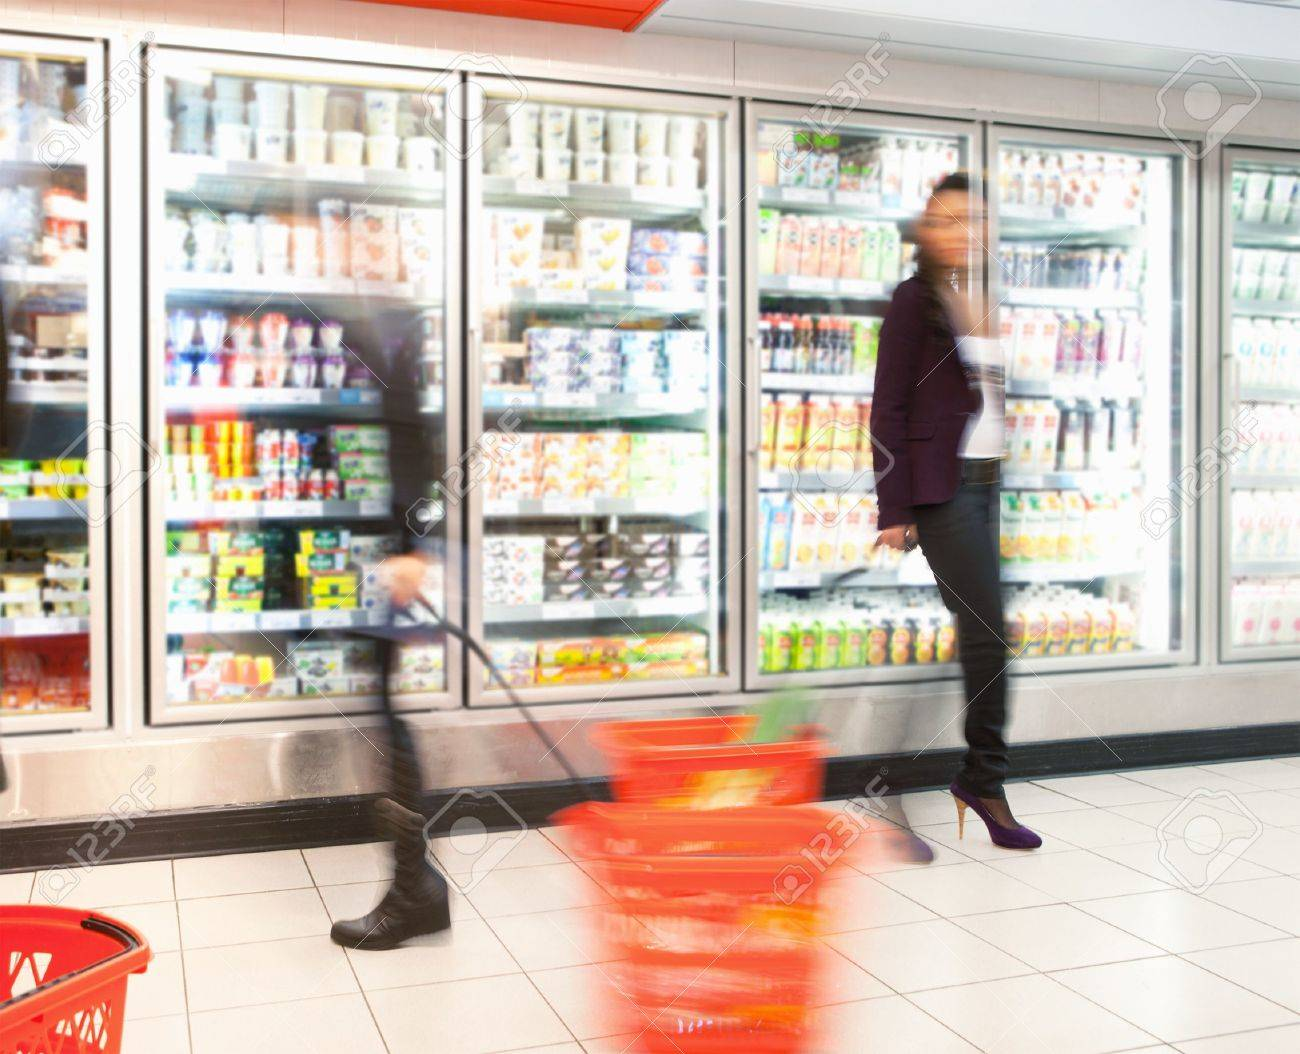 Blurred motion of people walking near refrigerator in shopping centre with baskets Stock Photo - 9470644